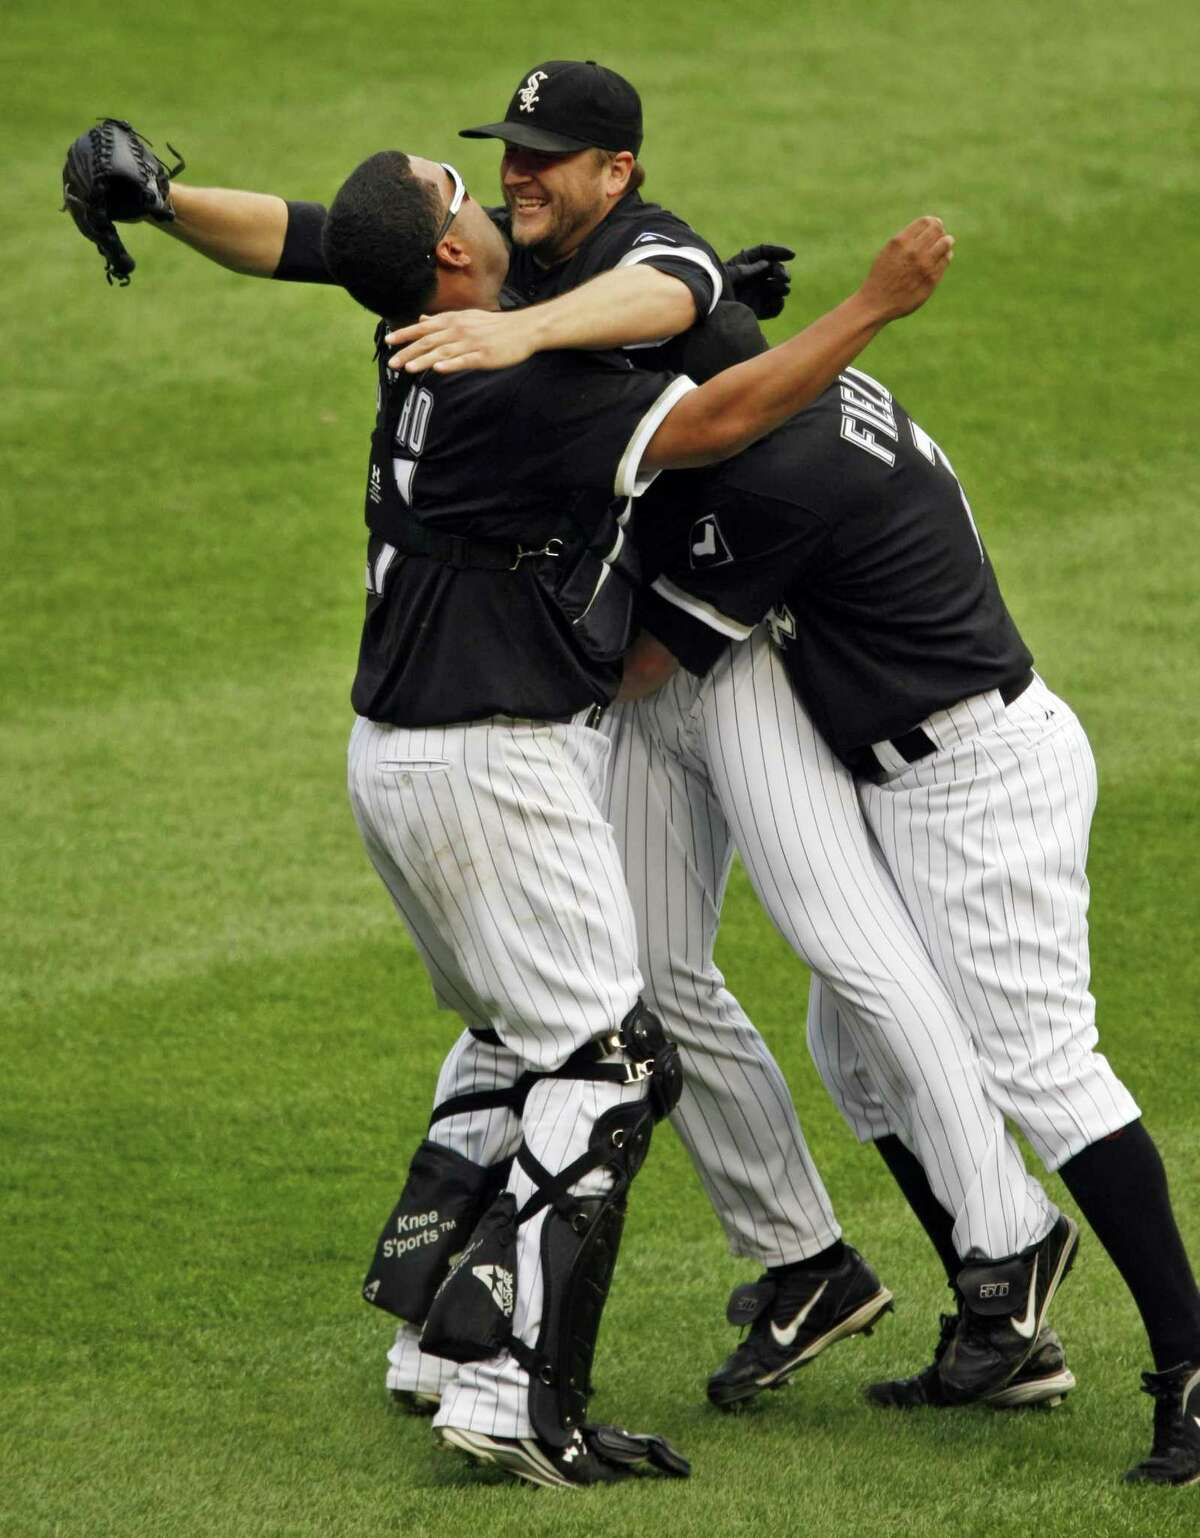 Chicago White Sox pitcher Mark Buehrle, center, is embraced by teammates Josh Fields, right, and Ramon Castro, after Buehrle threw a perfect game against the Tampa Bay Rays in a baseball game, Thursday(AP Photo/Chicago Tribune, Phil Velasquez)